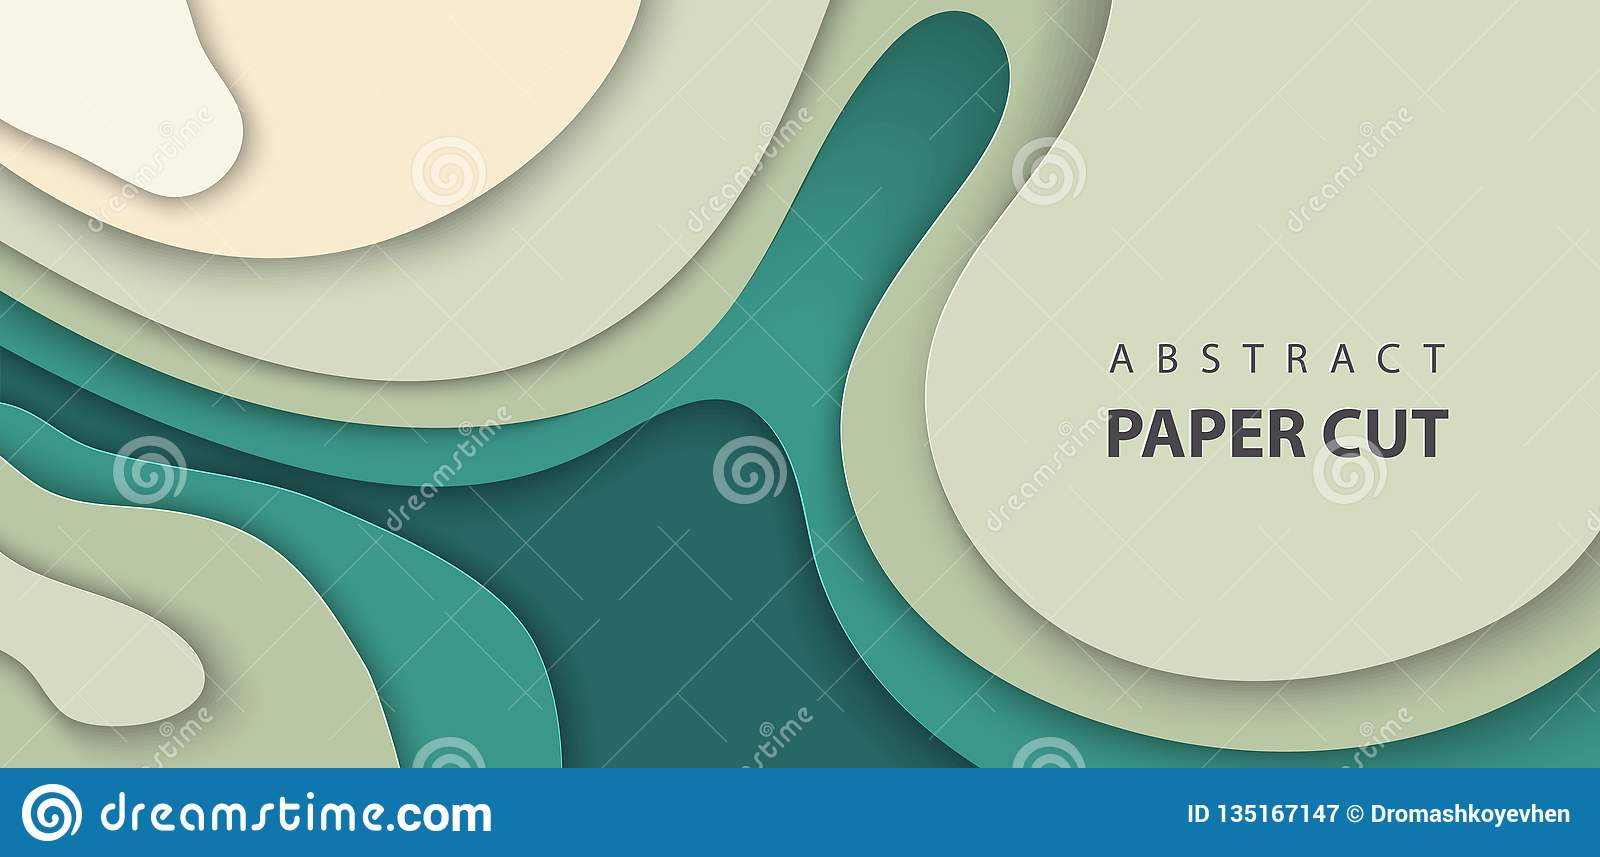 Vector background with deep green color paper cut waves shapes. 3D abstract paper art style, design layout